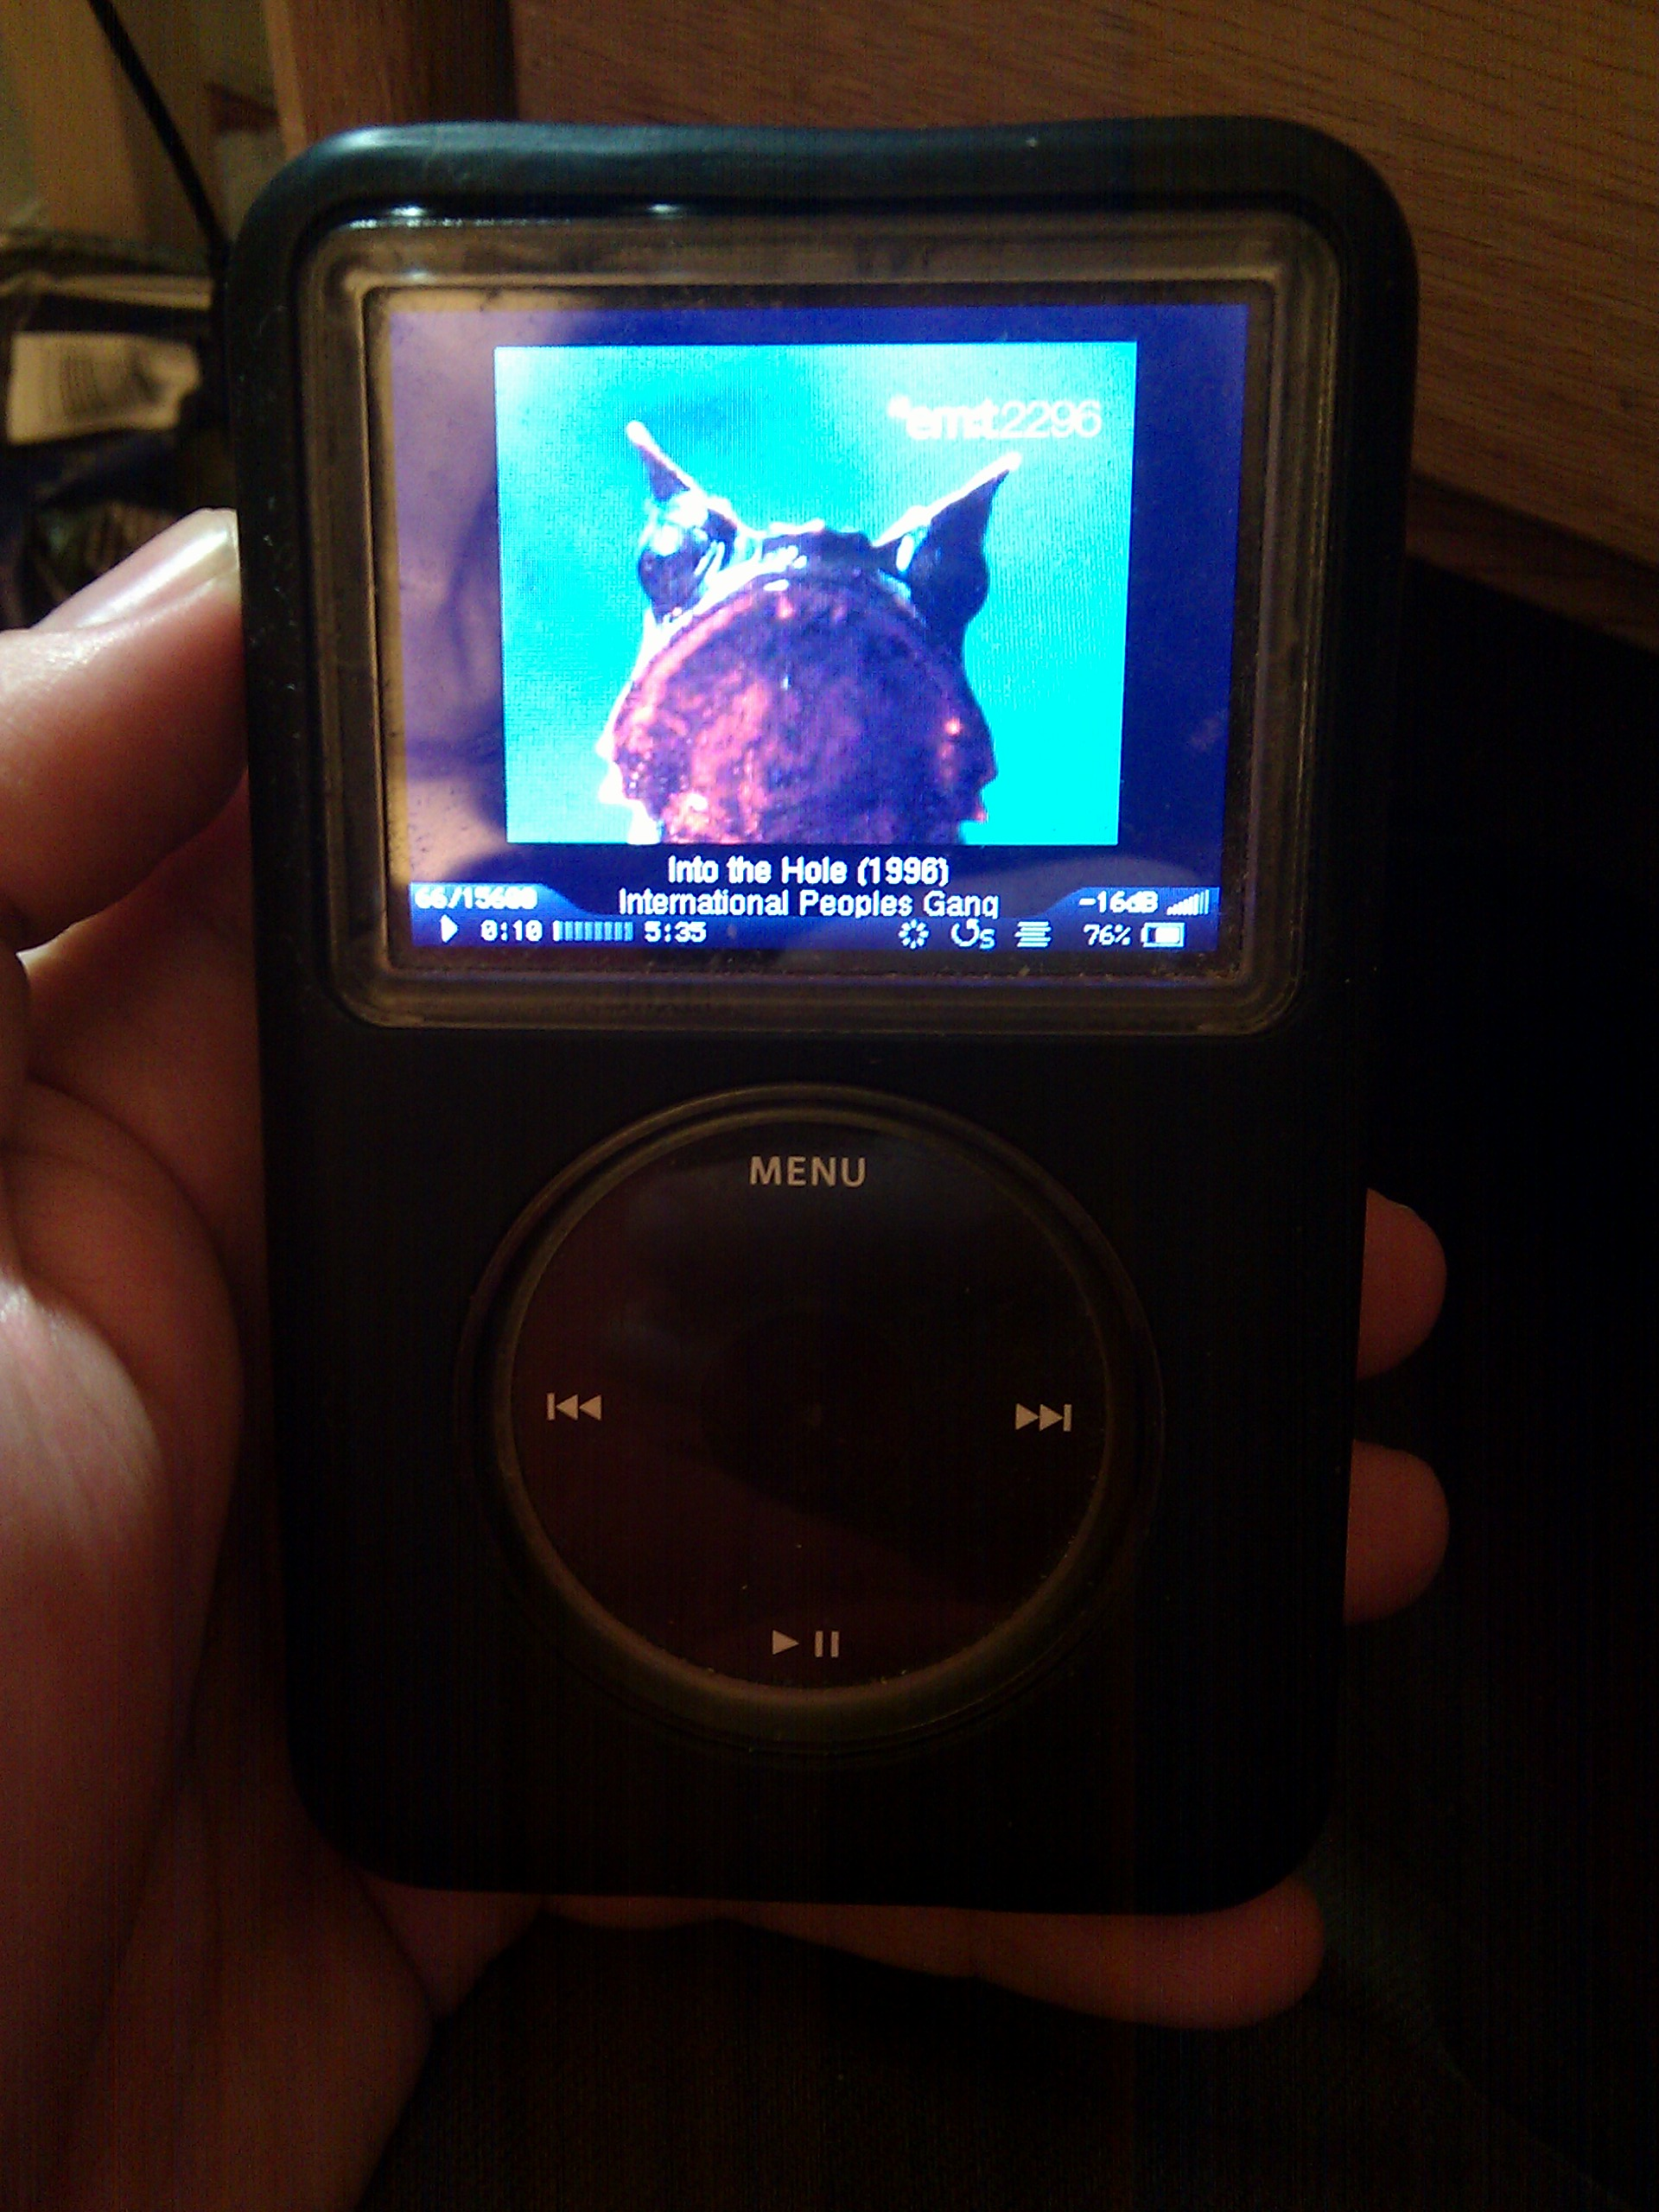 rockboxing the ipod classic  6g and above   was the